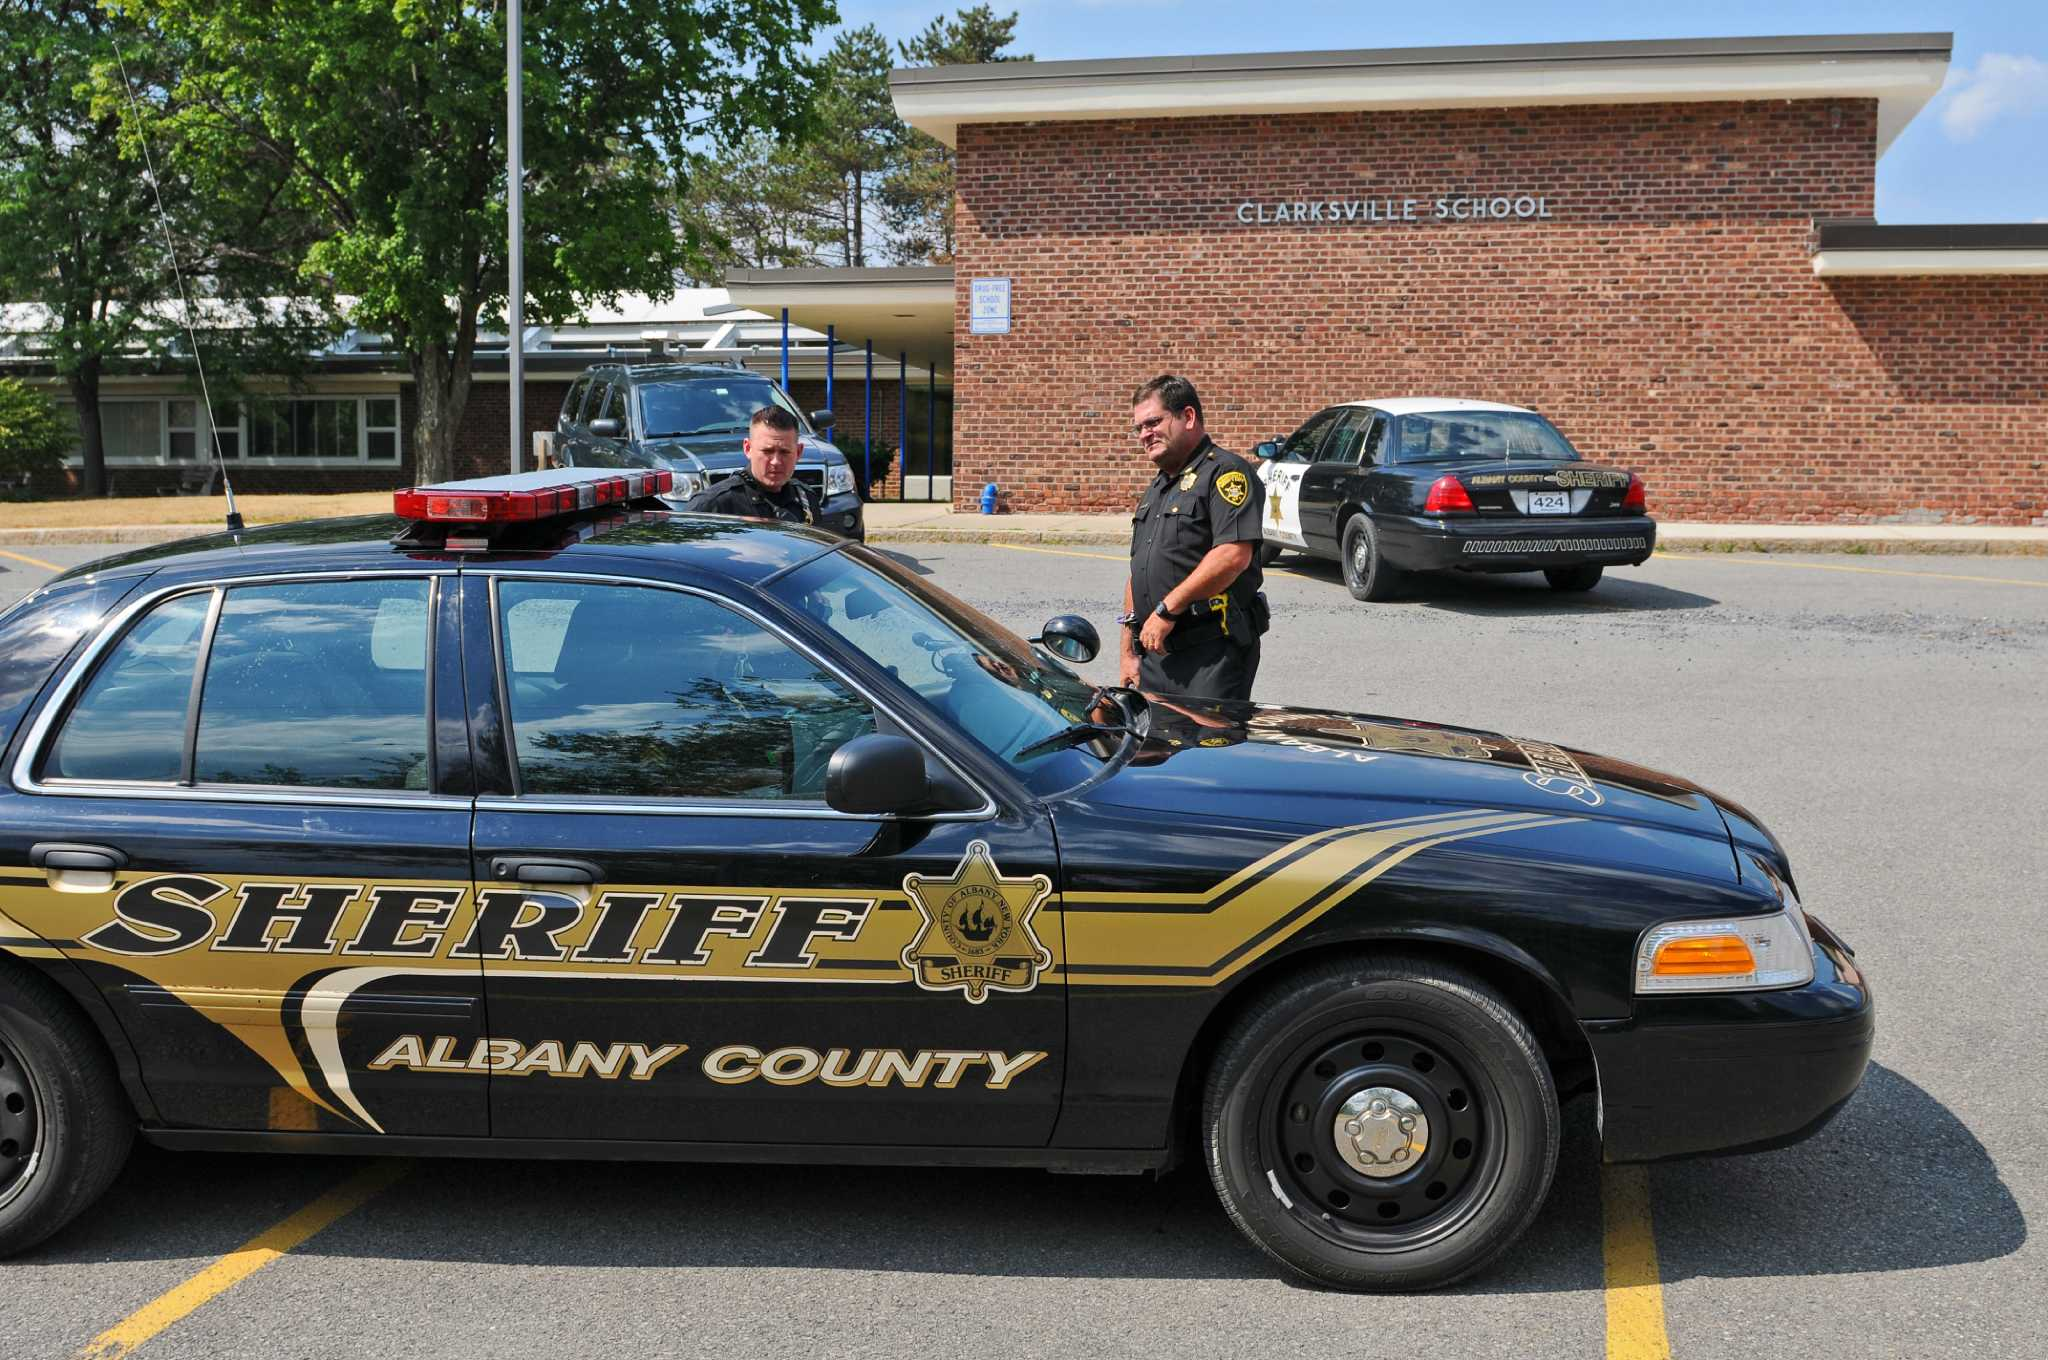 Albany County plans new 911 center in Clarksville